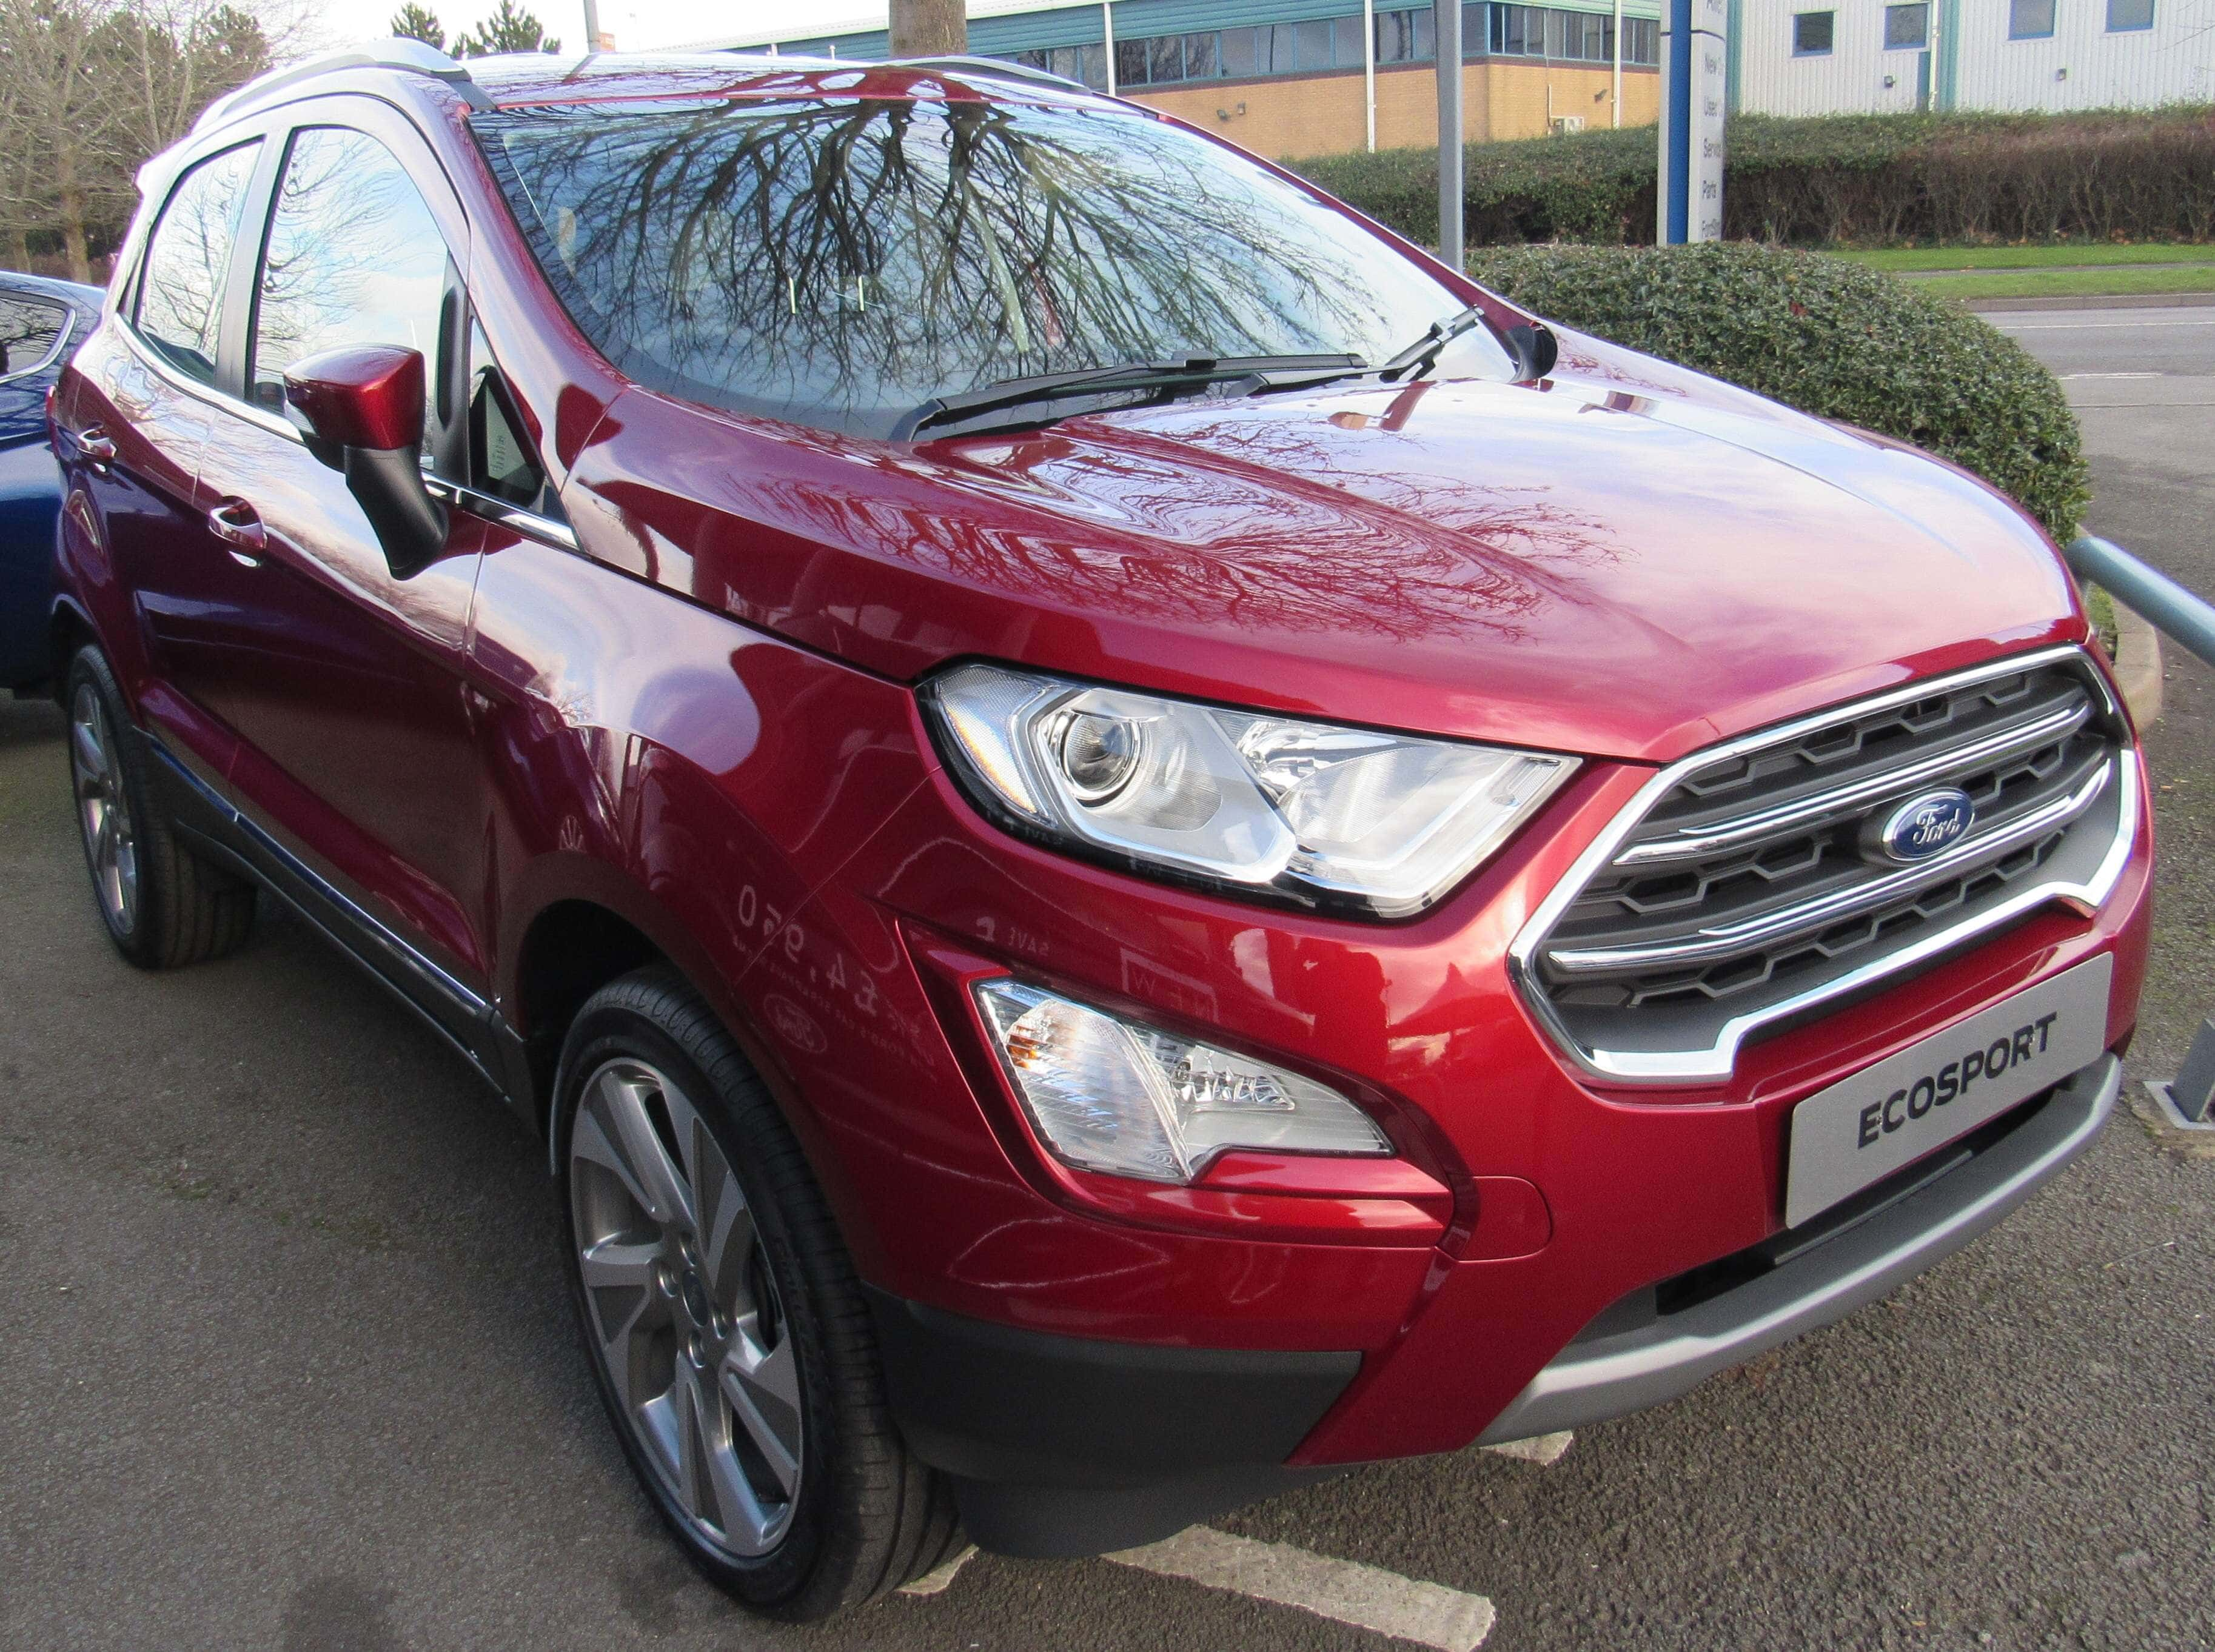 The Ford Ecosport is one of the vehicles manufactured by Ford India Private Limited. (Image Credit: Vauxford/Wikimedia Commons)